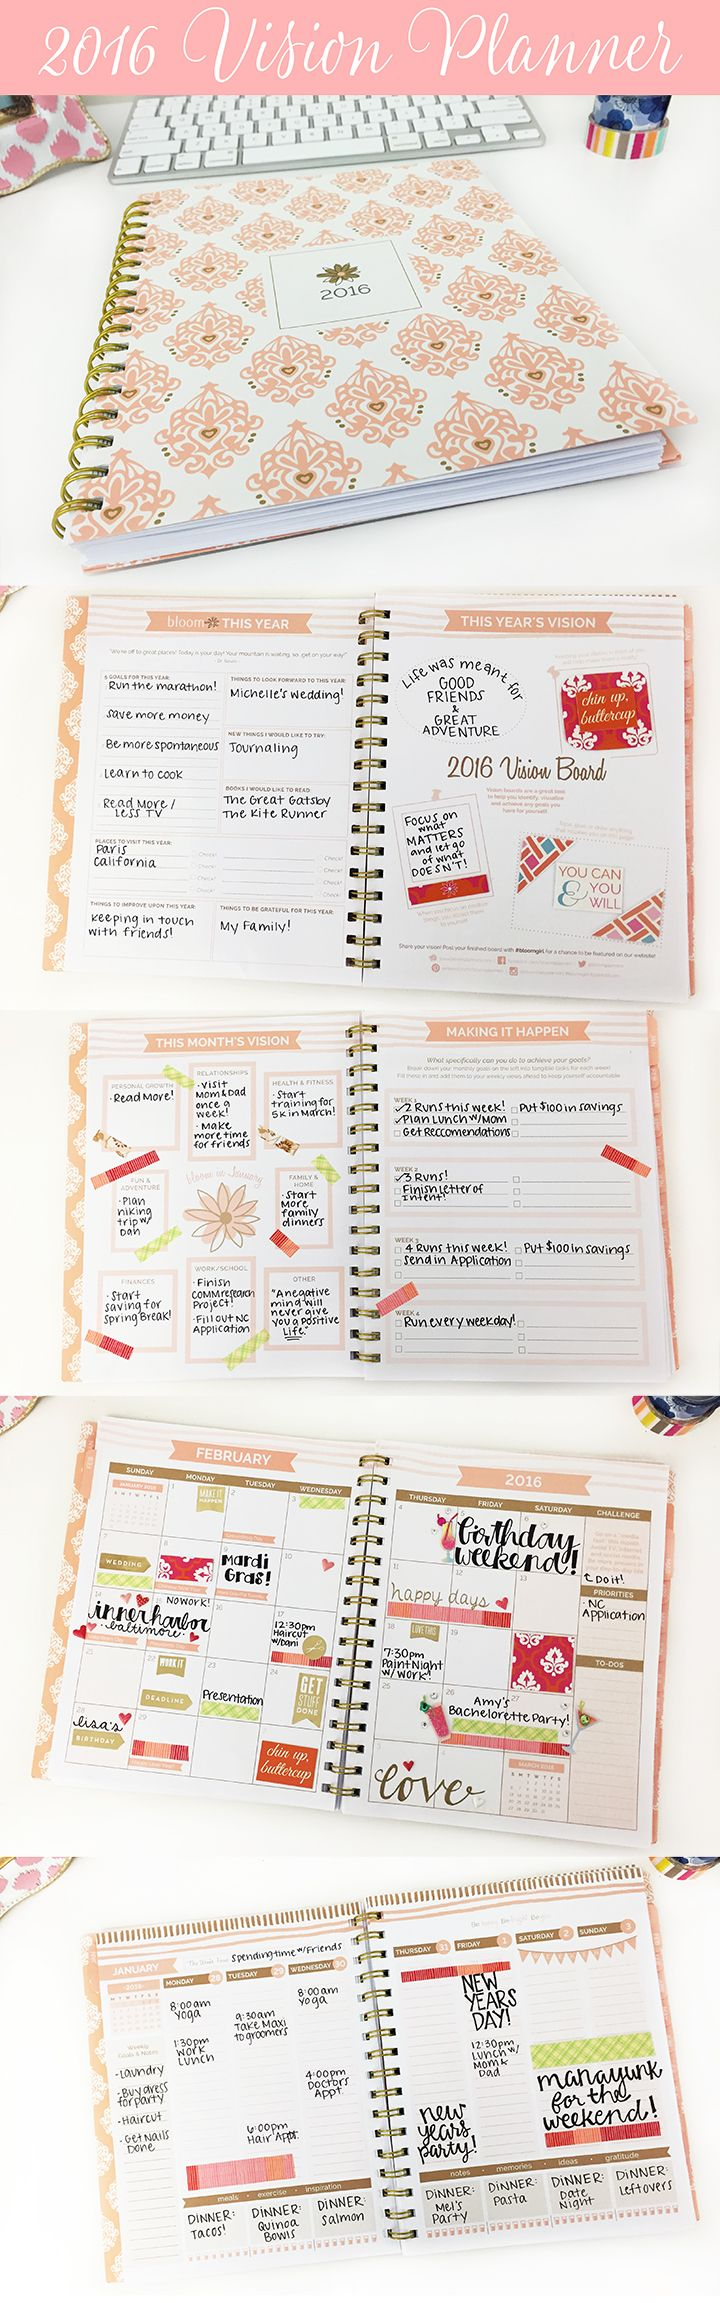 bloom's brand new 2016 Vision Planner is designed to help you achieve all of your goals and visions for 2016. Features include a yearly vision board, monthly goal planning with action steps, vertical weekly planning pages and more!